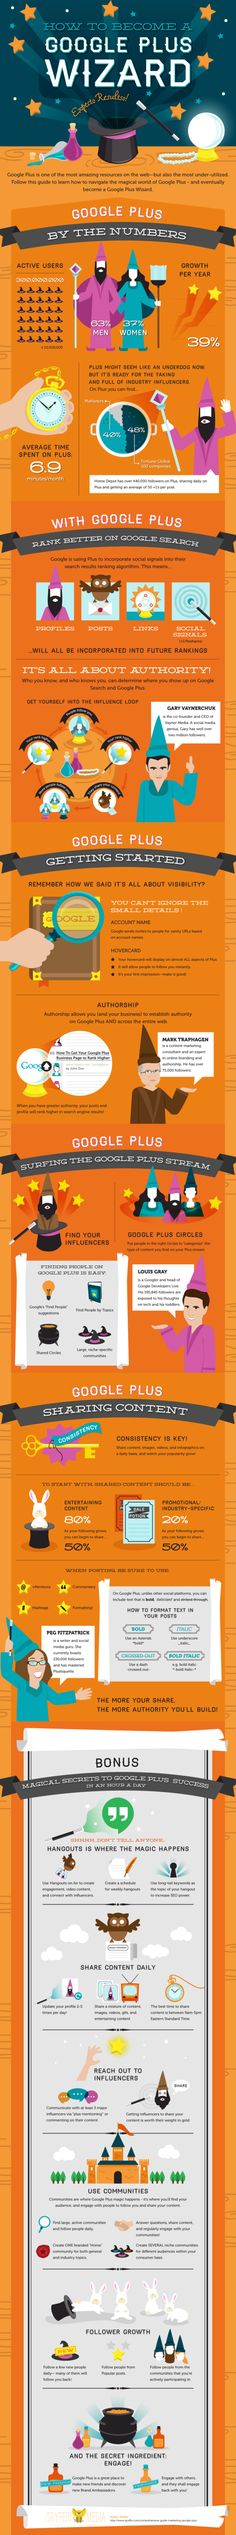 Google plus is one of the most amazing resources on the web-but also the most under-utilized. How to Become a Google Plus Wizard.